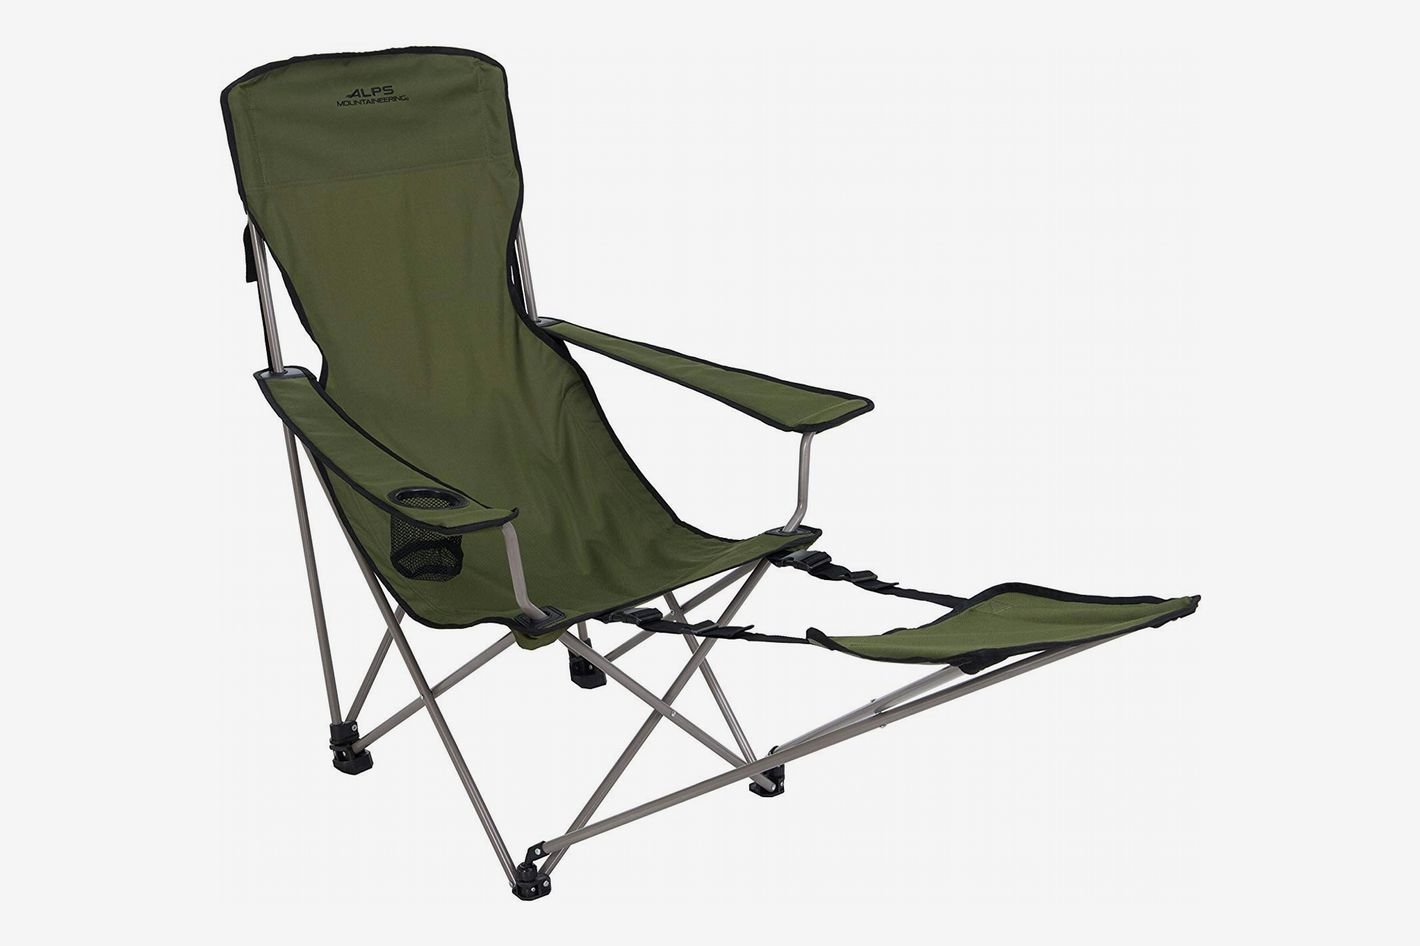 Magnificent 12 Best Camping Chairs 2019 The Strategist New York Magazine Beatyapartments Chair Design Images Beatyapartmentscom